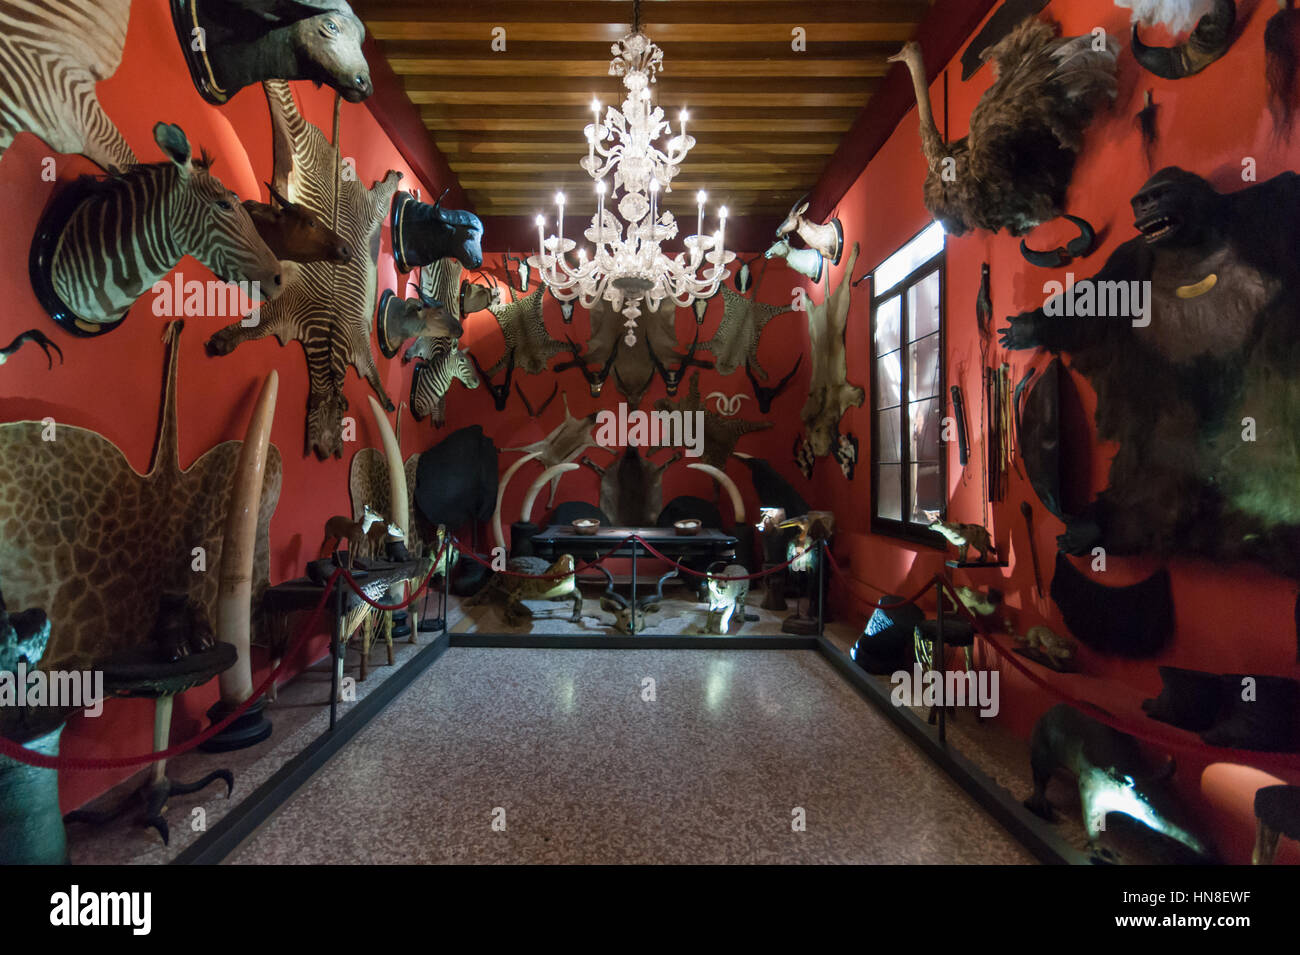 Stuffed animals gallery in the Natural History Museum of Venice - Stock Image